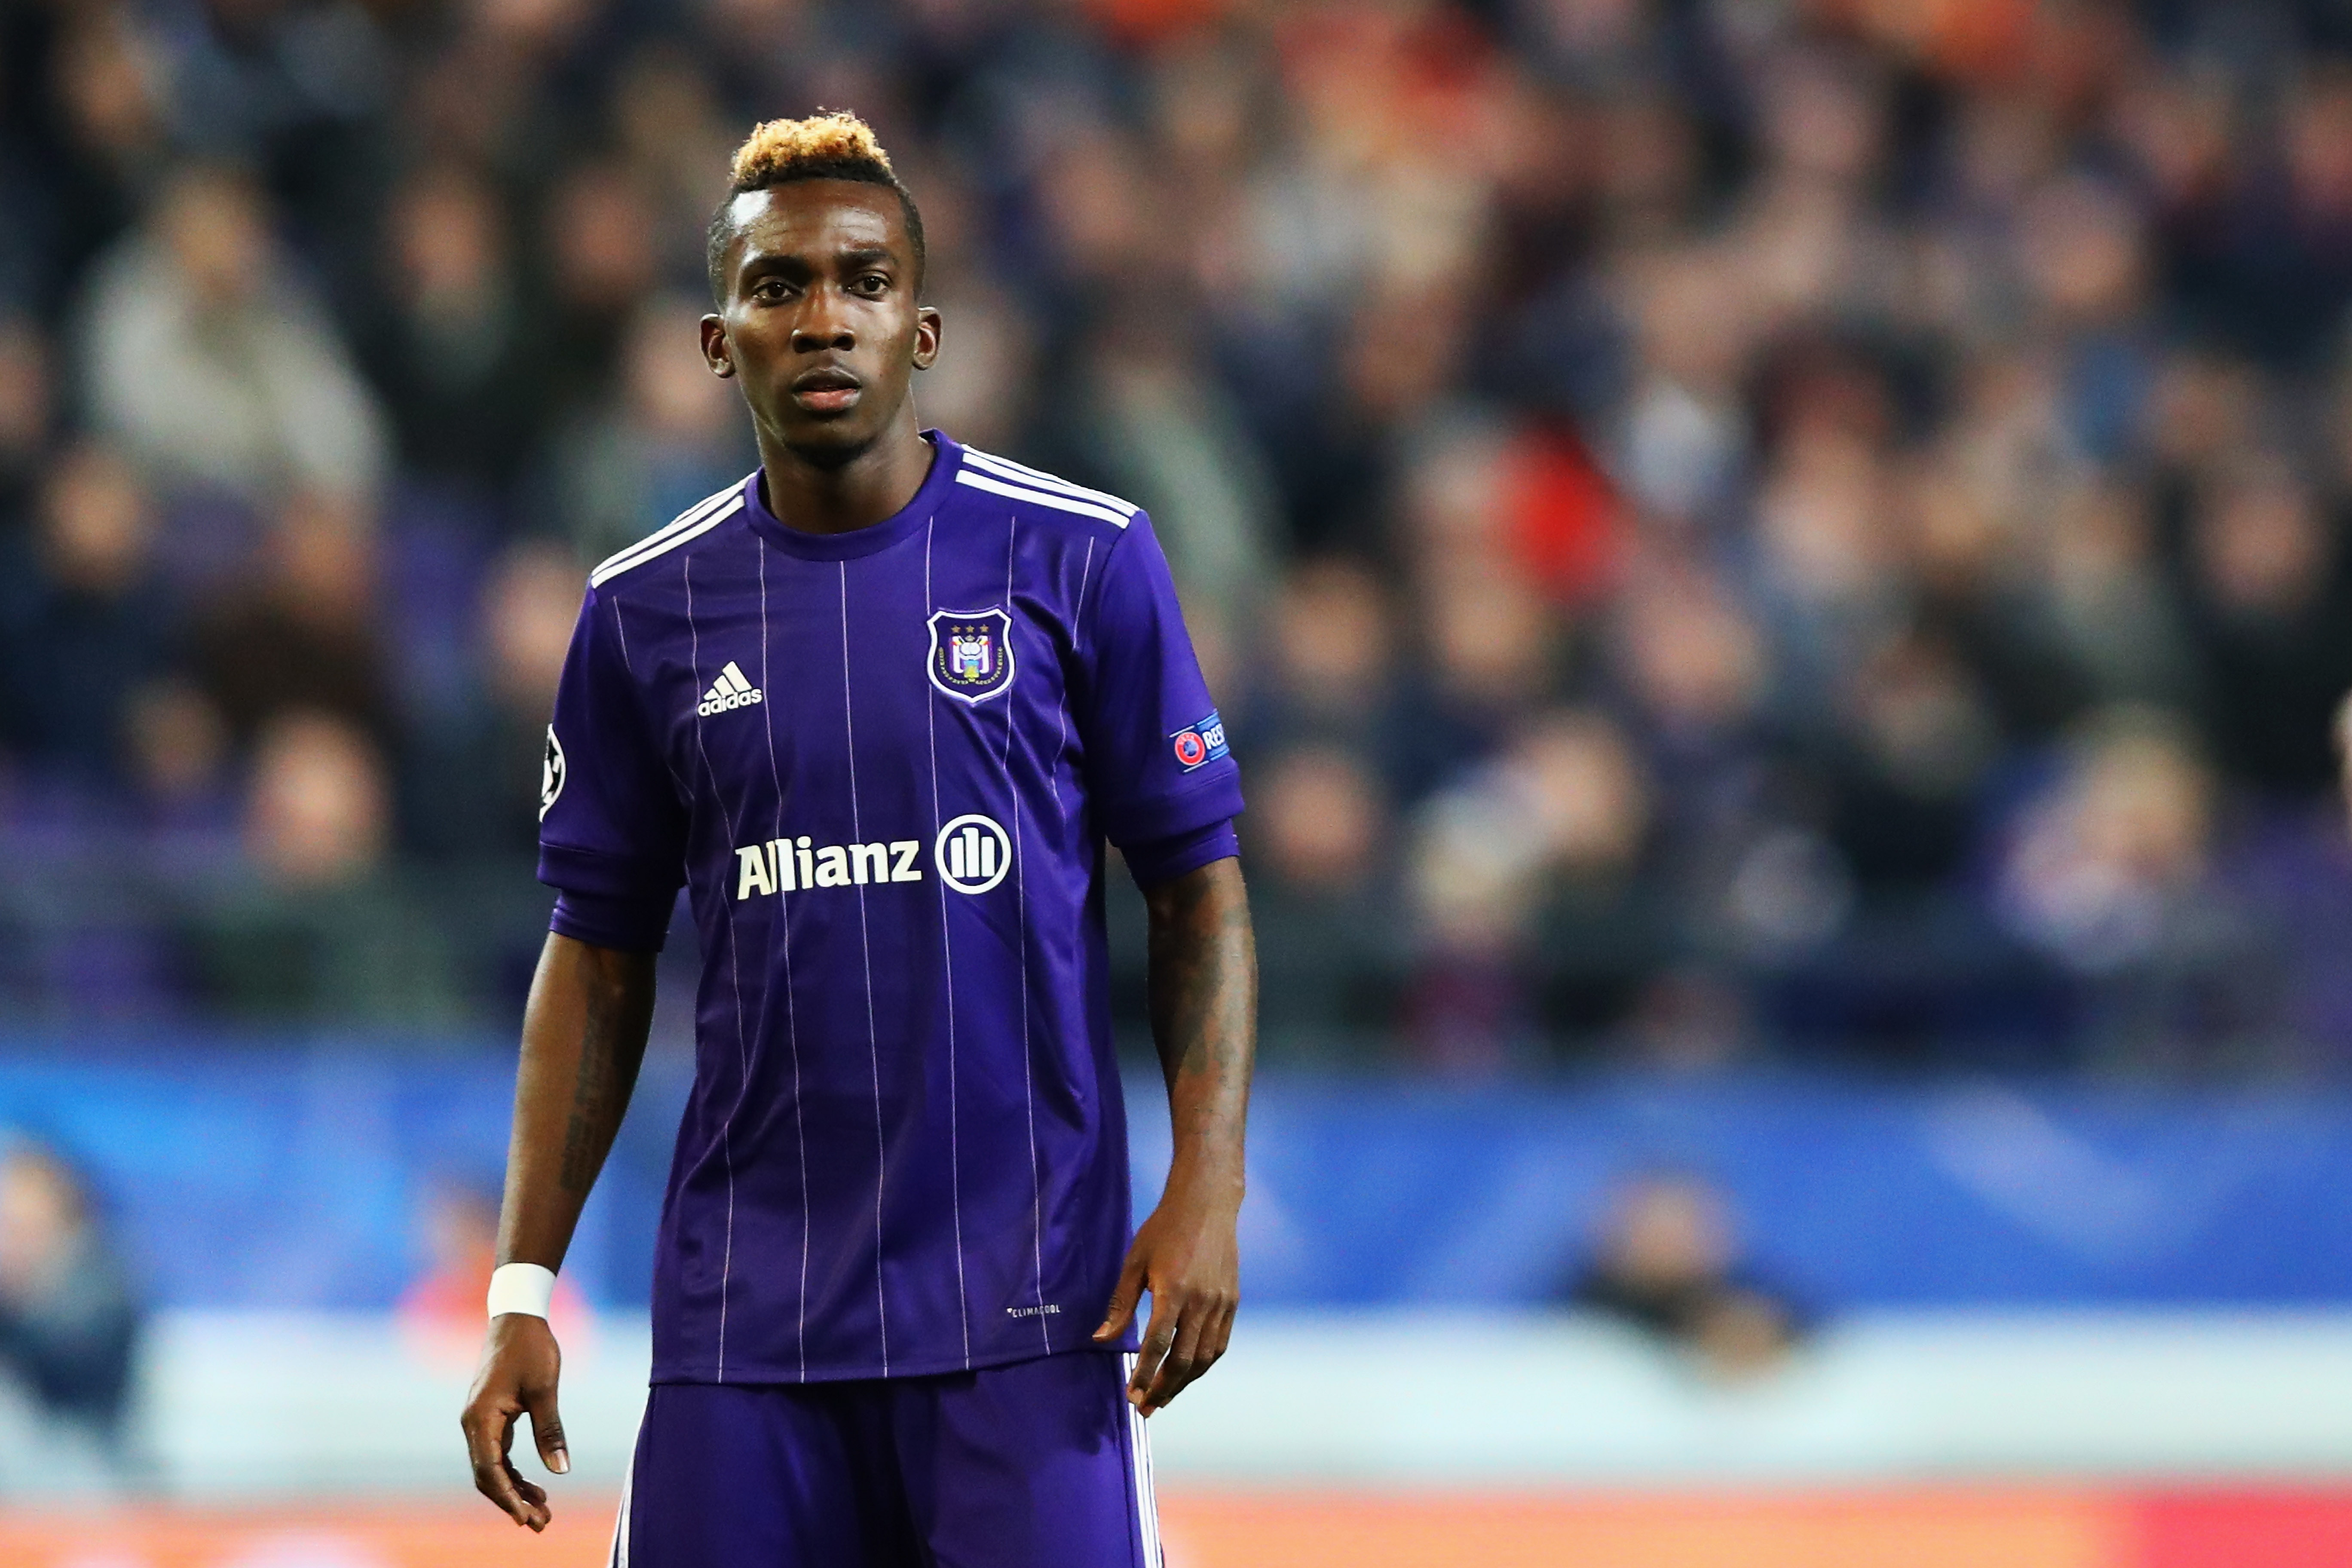 Bayern Munich linked with swoop for Everton striker